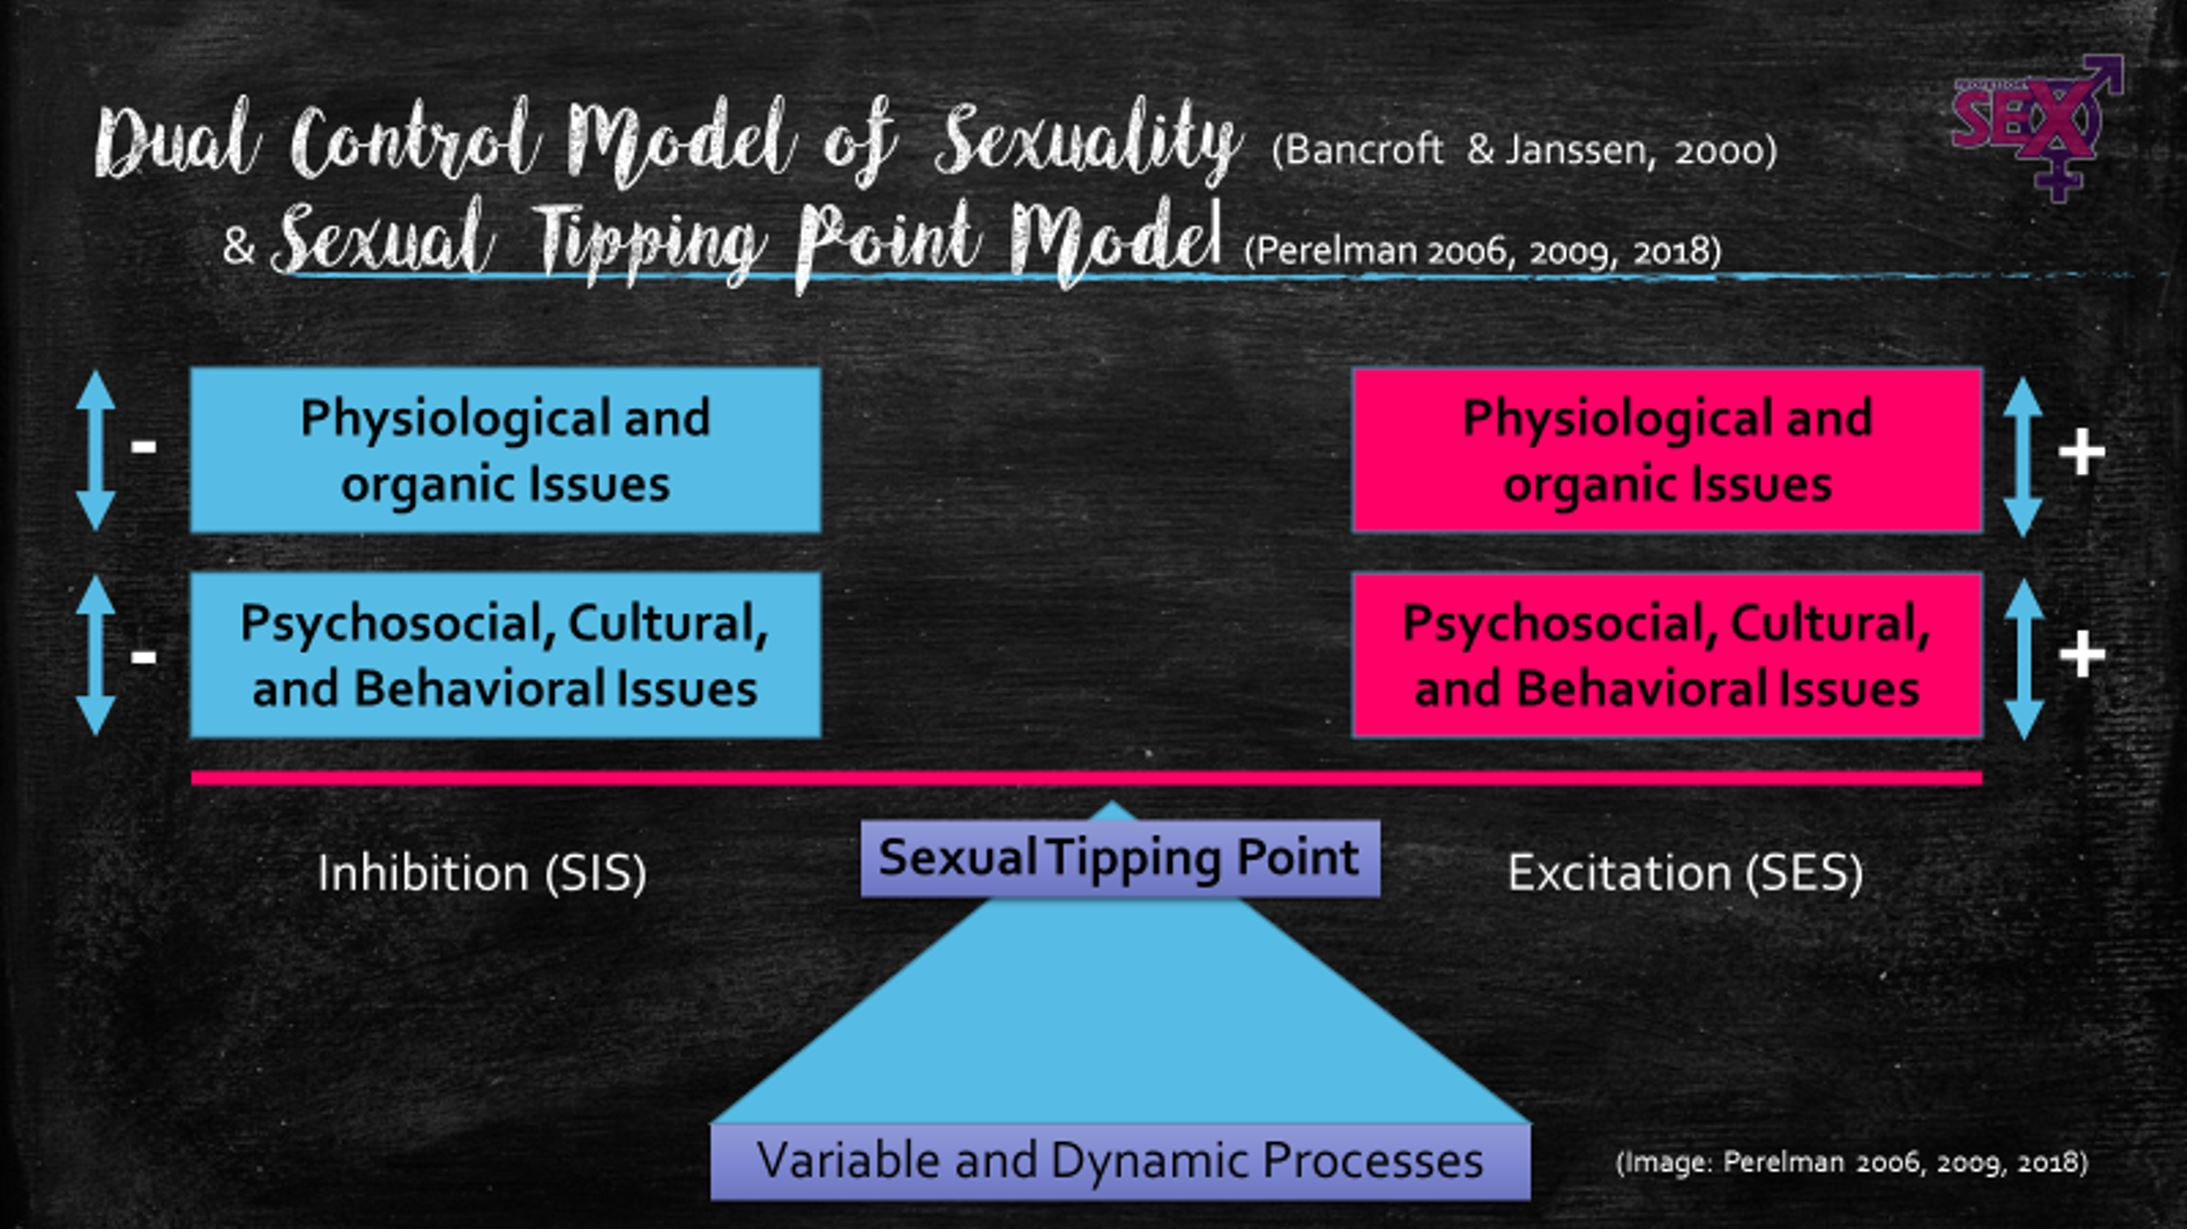 sexual-tipping-point.JPG